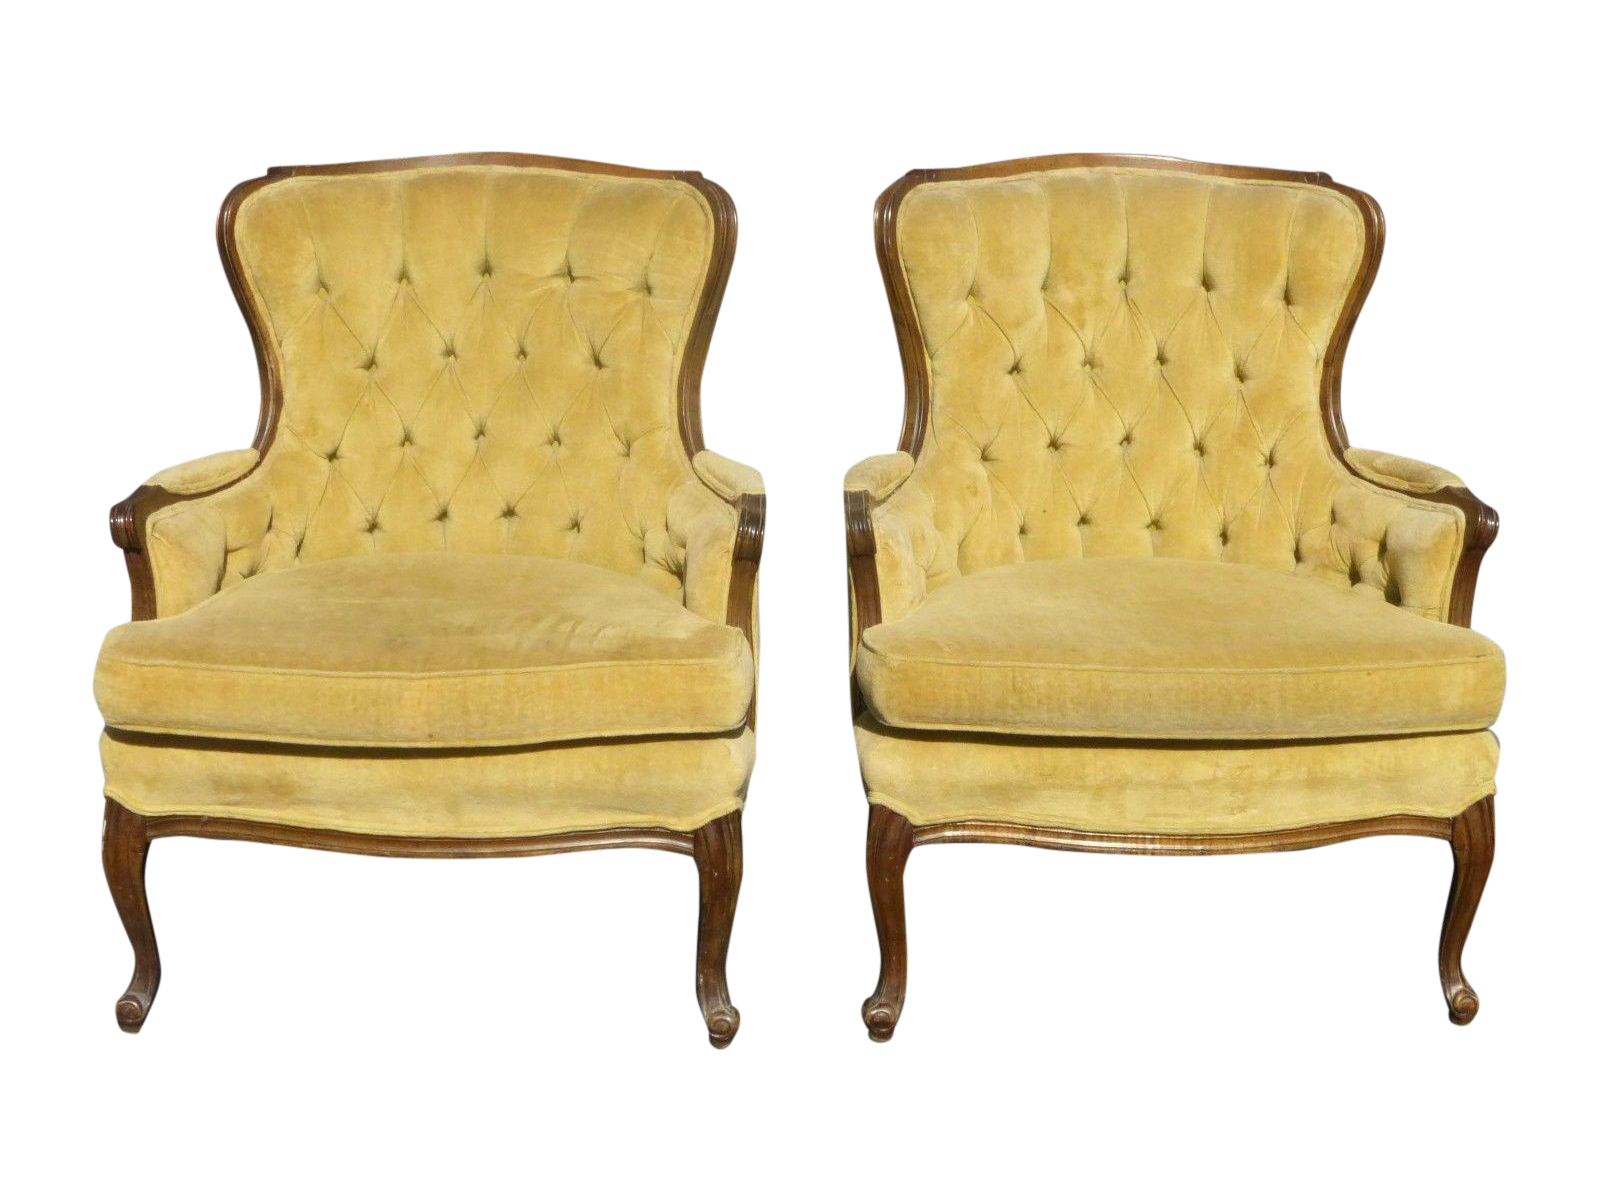 Vintage Sam Moore Yellow Tufted Chairs A Pair On Chairish Com